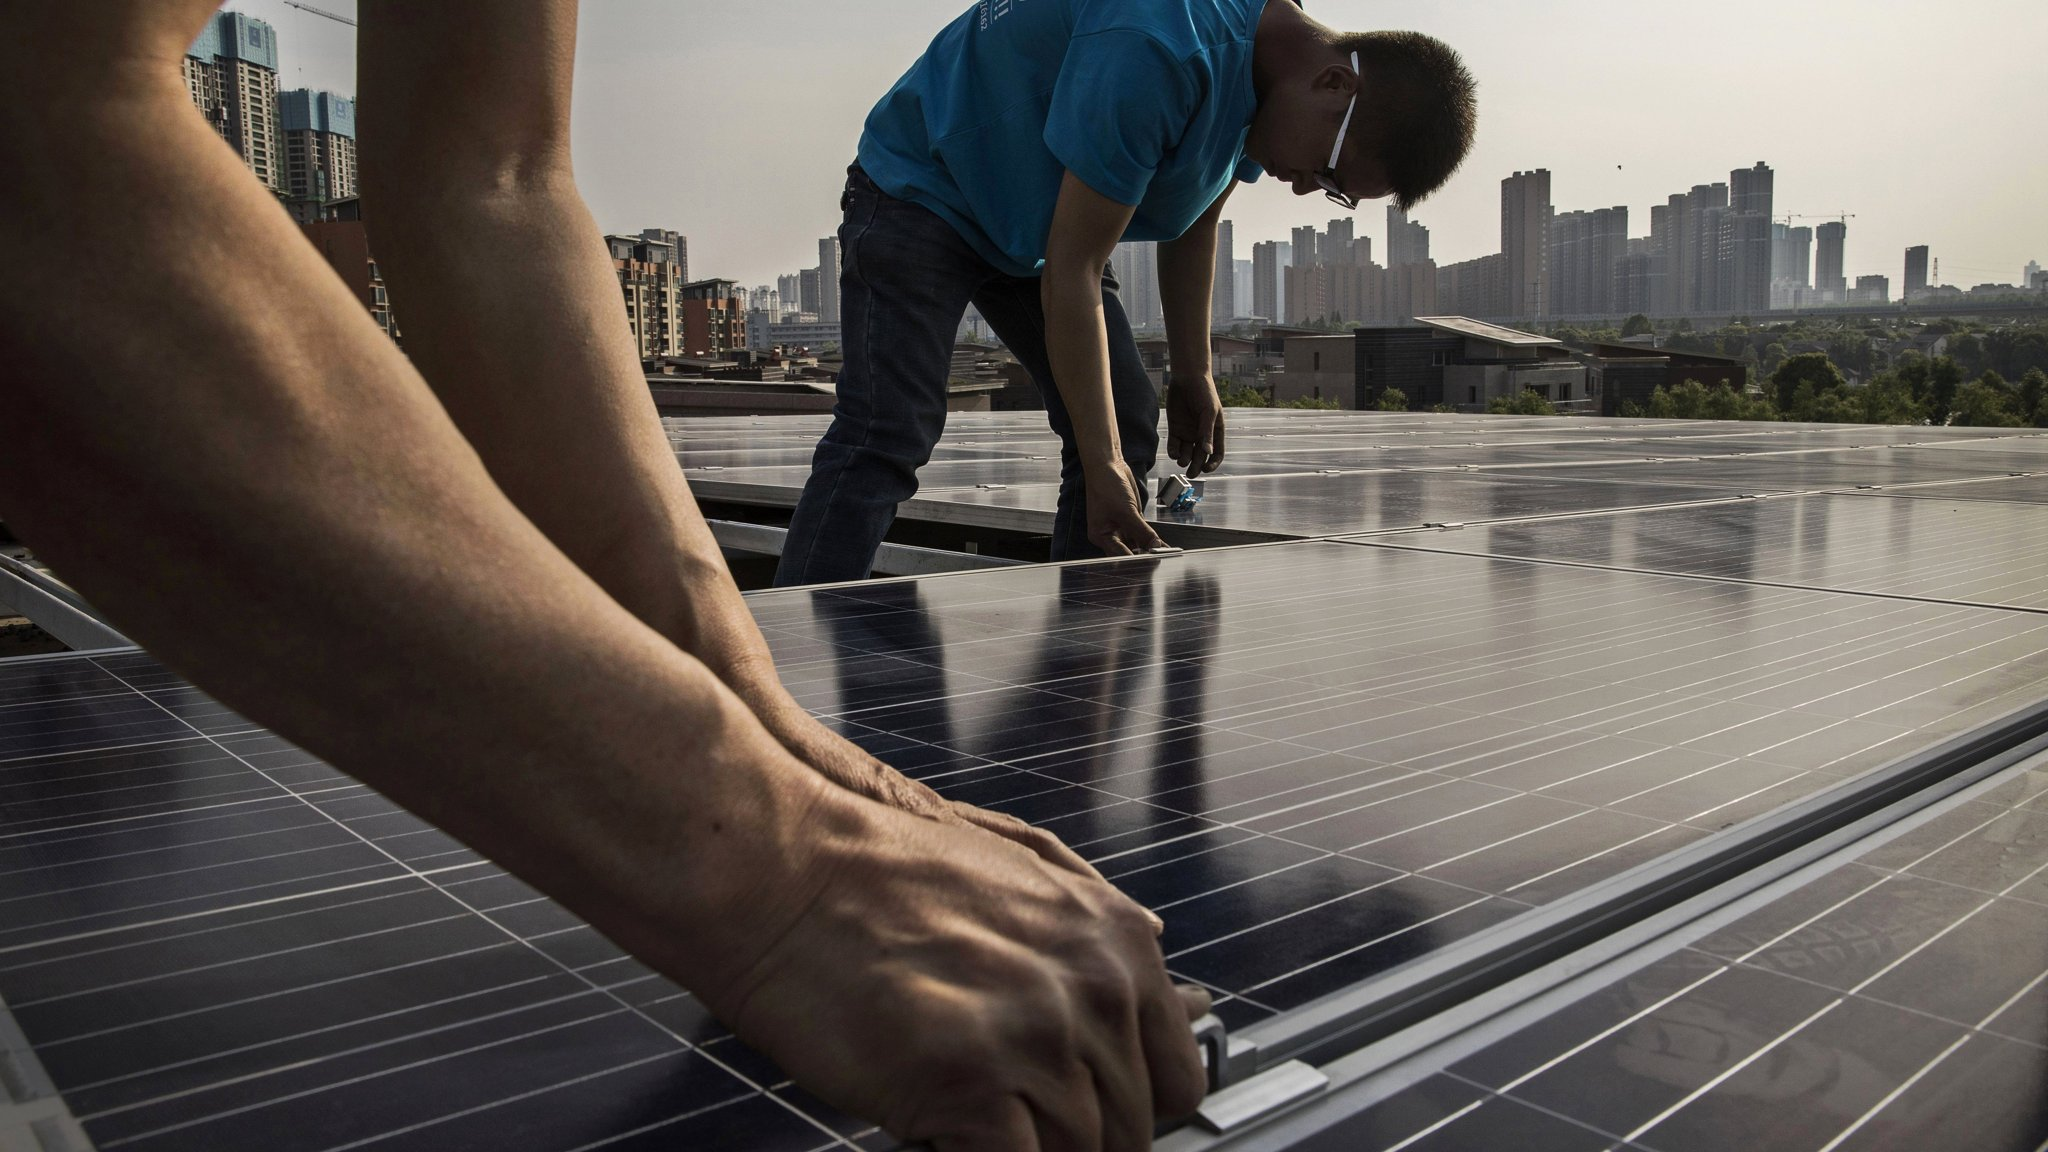 ft.com - Emerging markets poised to lead pack on renewable energy